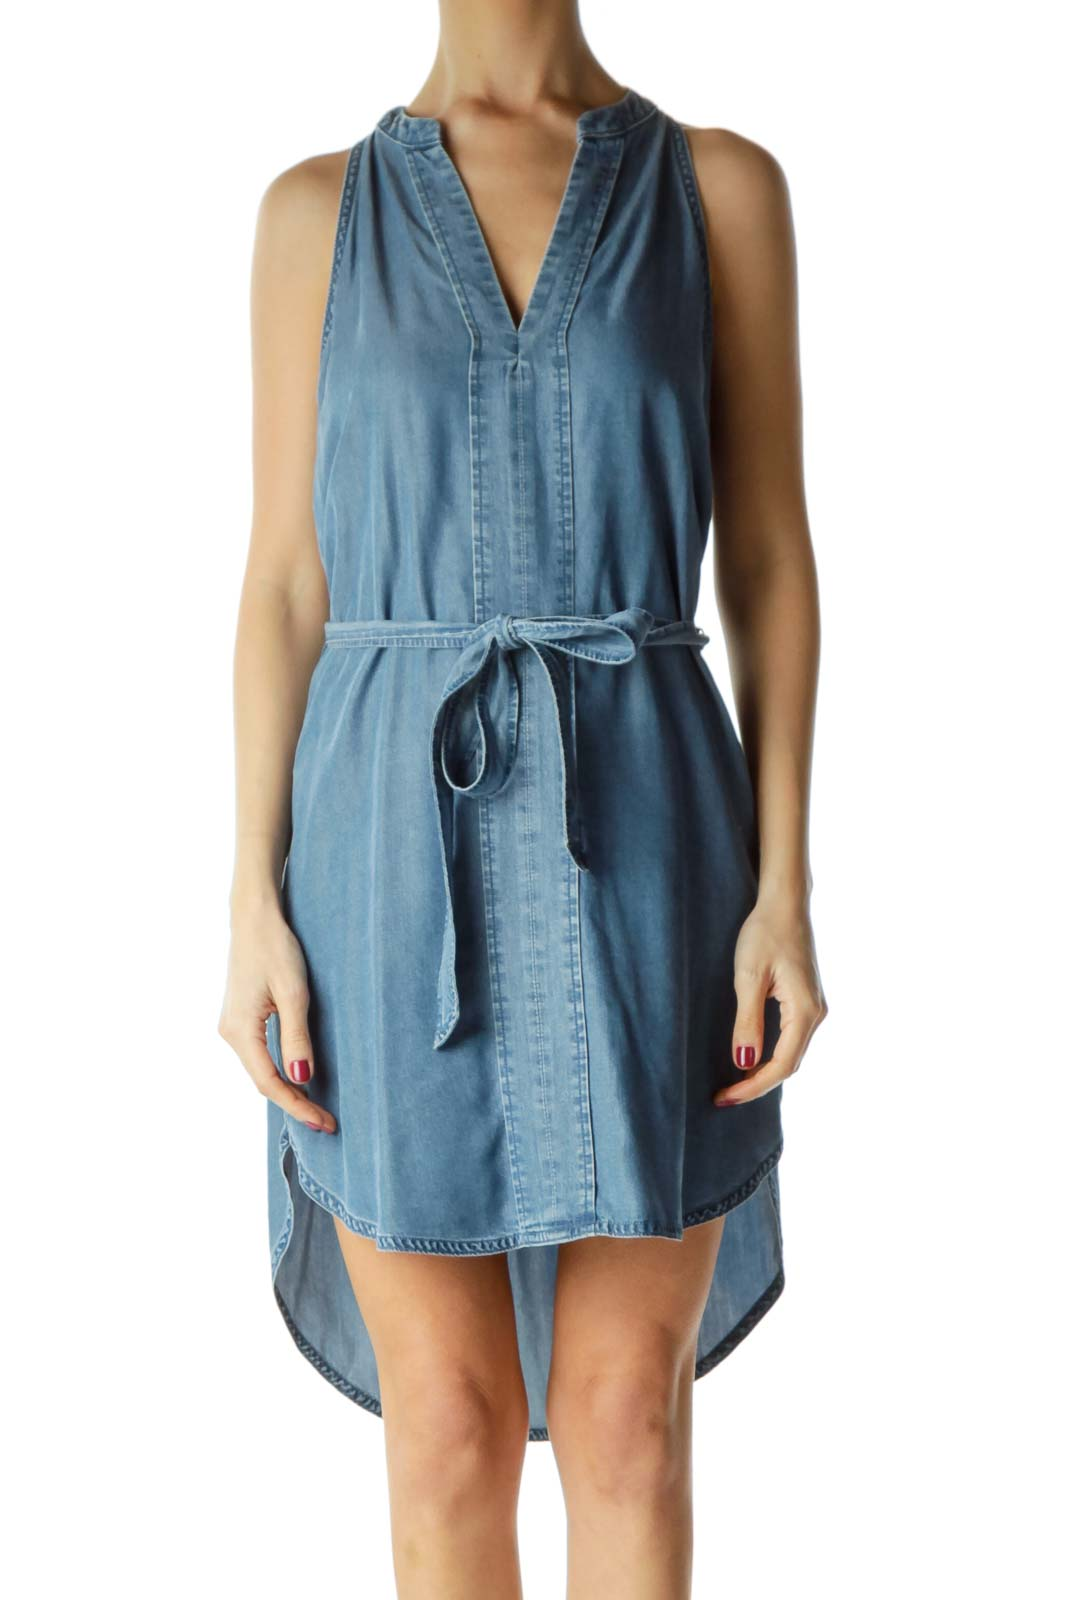 Blue Racerback Denim Dress with Tie